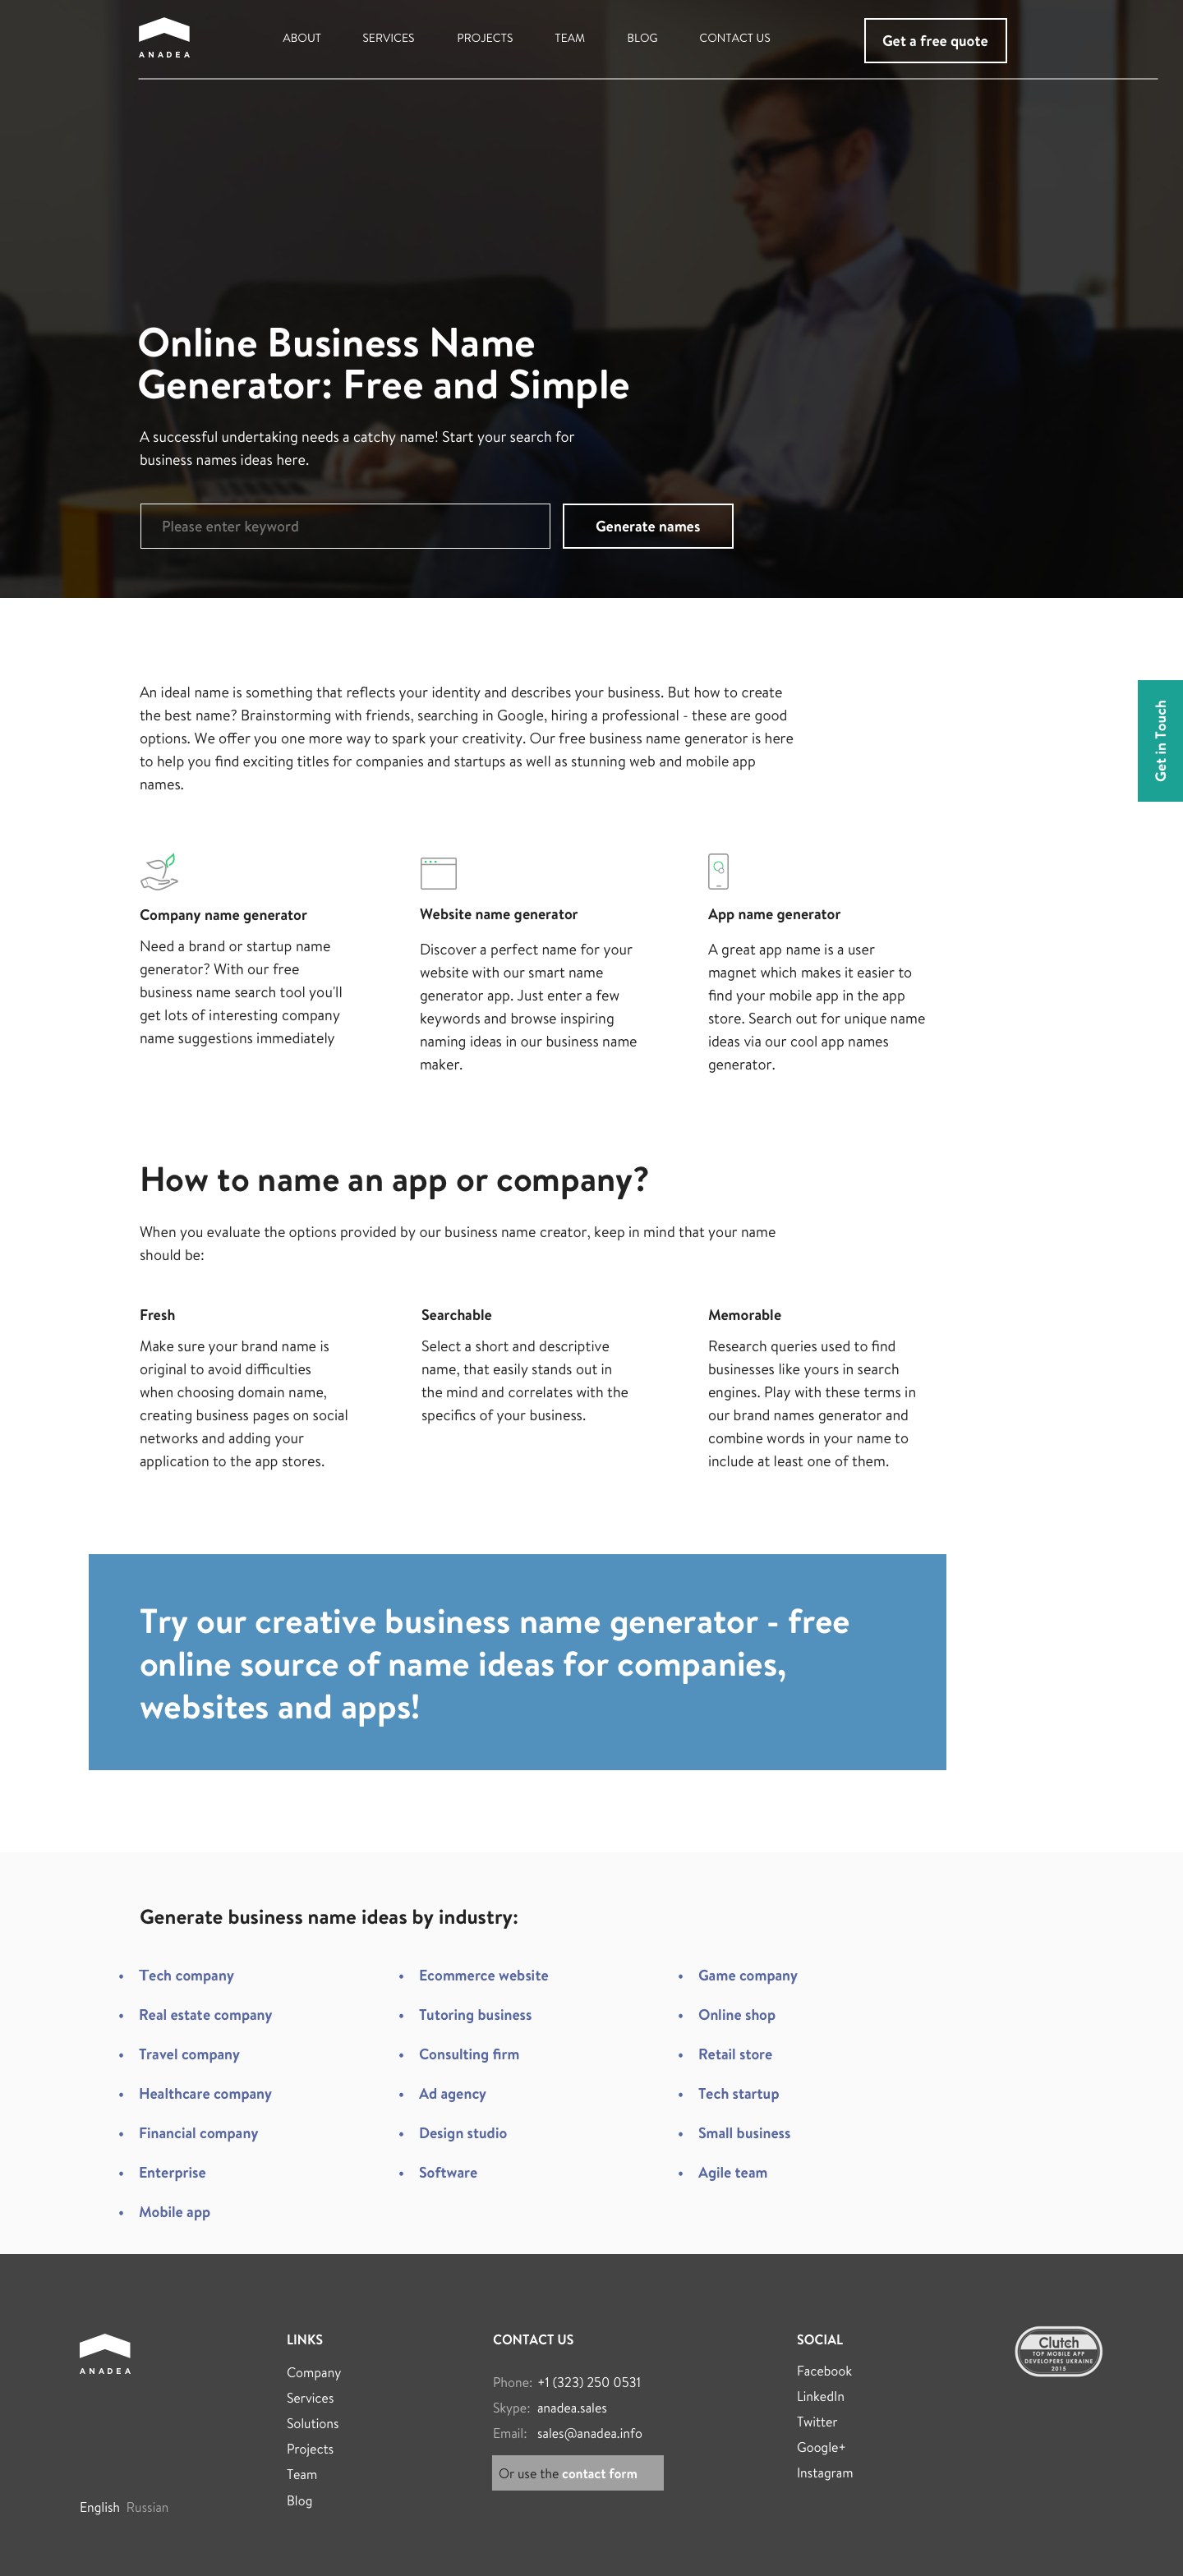 Online Business Name Generator on Behance